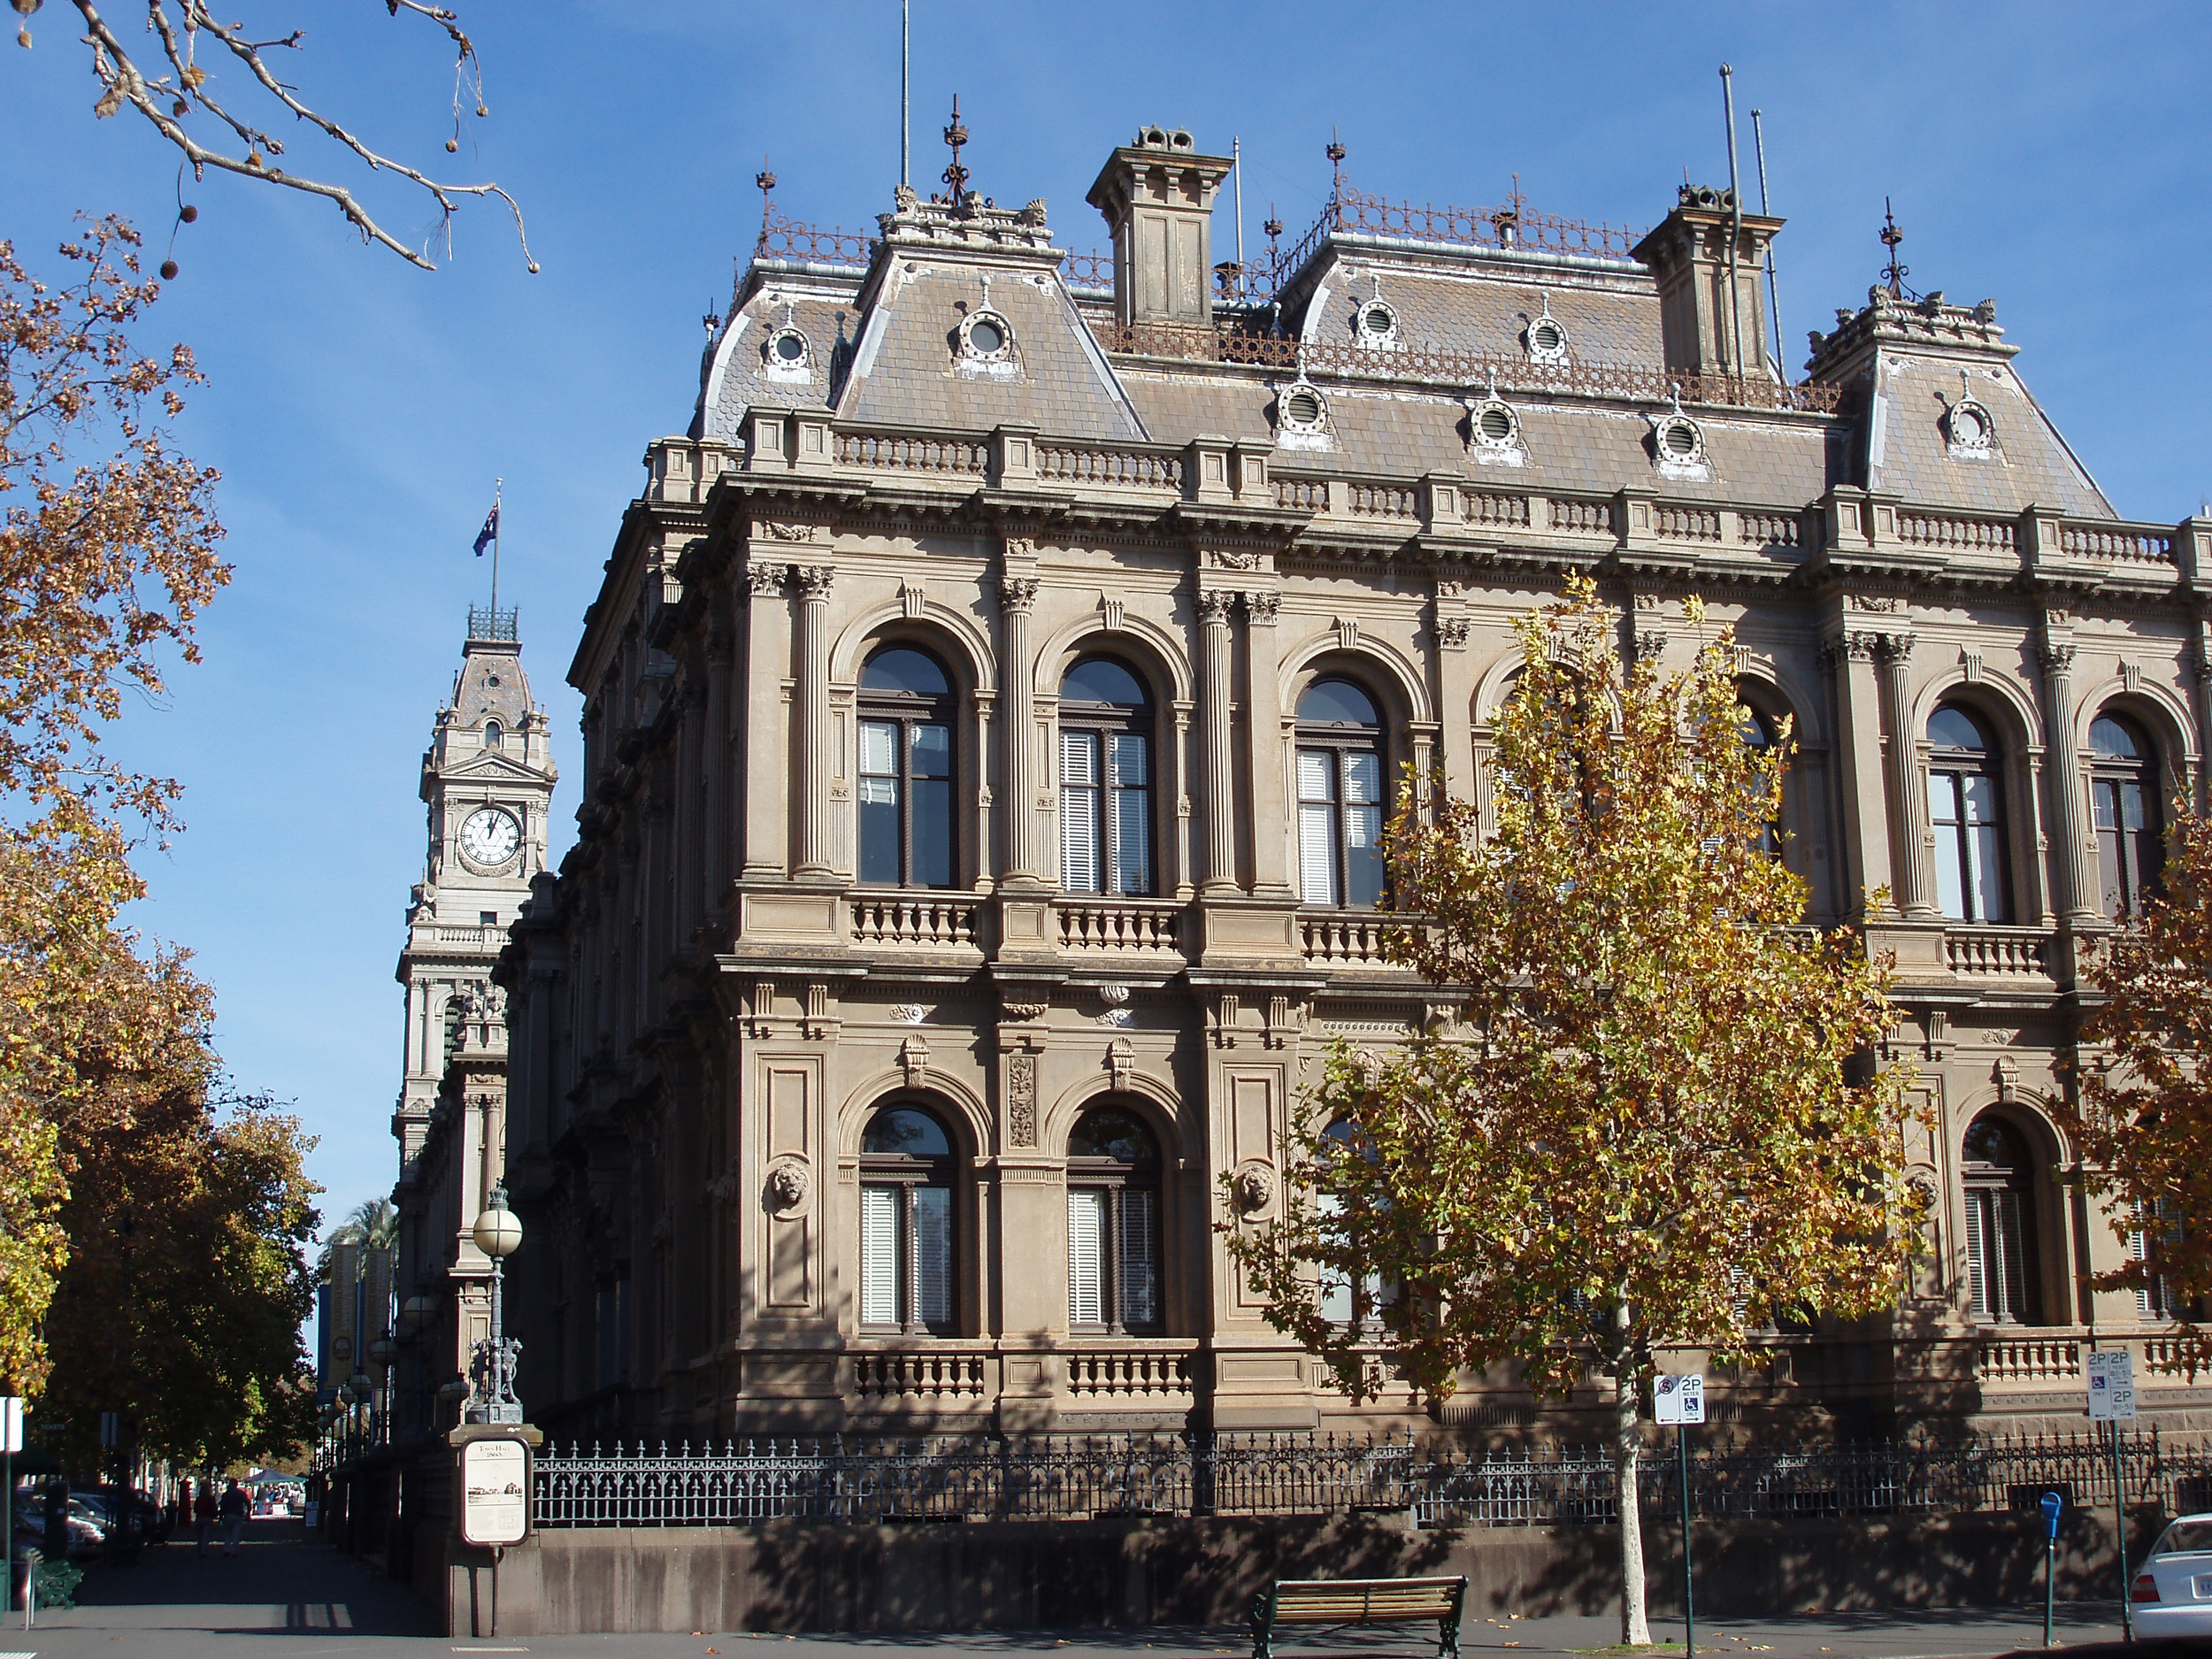 the grand facade of bendigo law courts, victoria